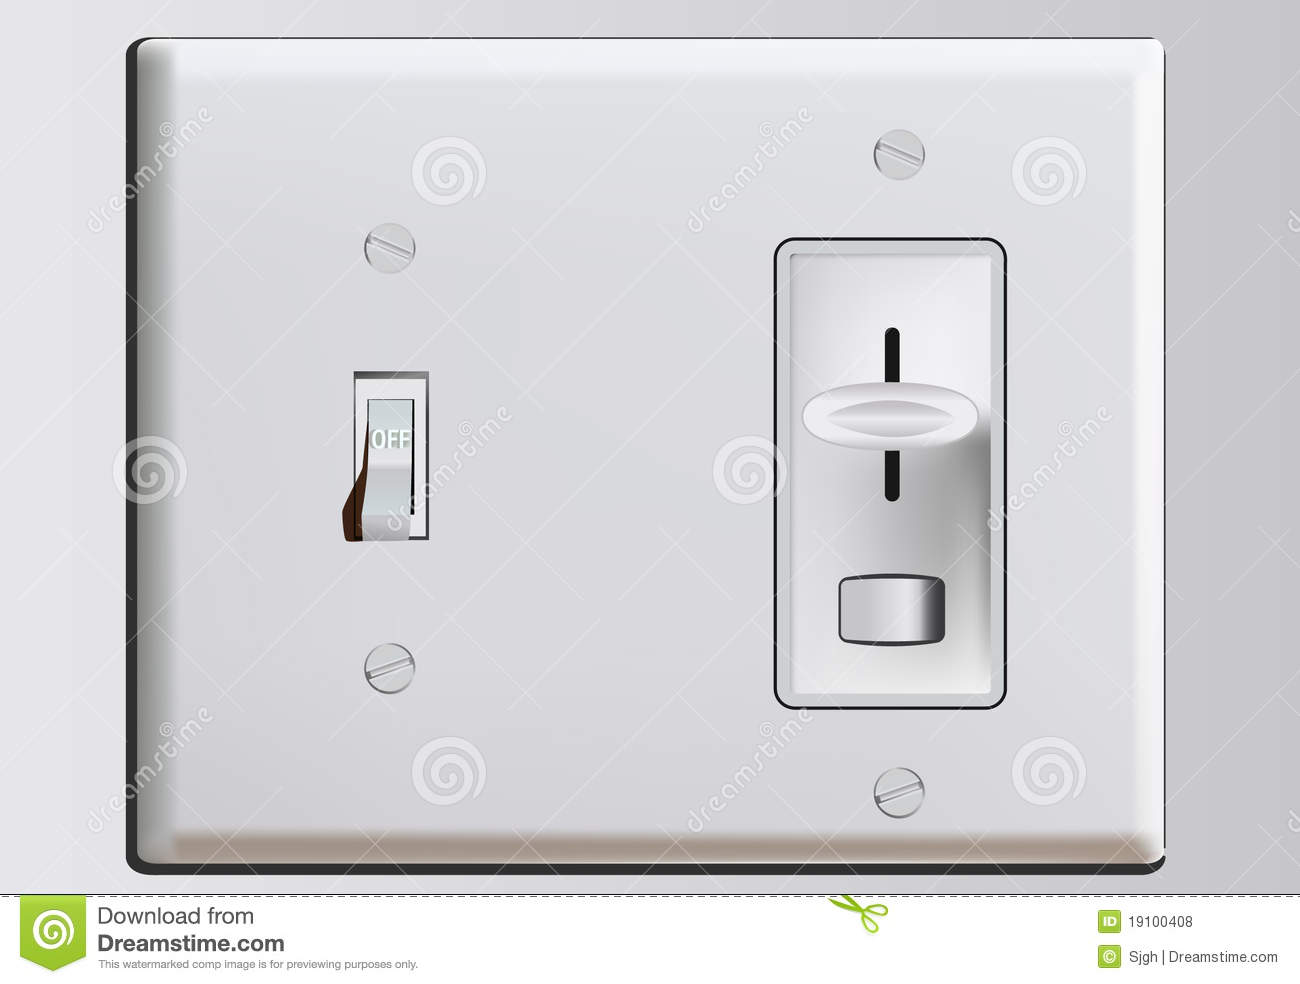 Royalty Free Stock Photos  bination Switch Plate Dimmer Image19100408 on electric circuit light